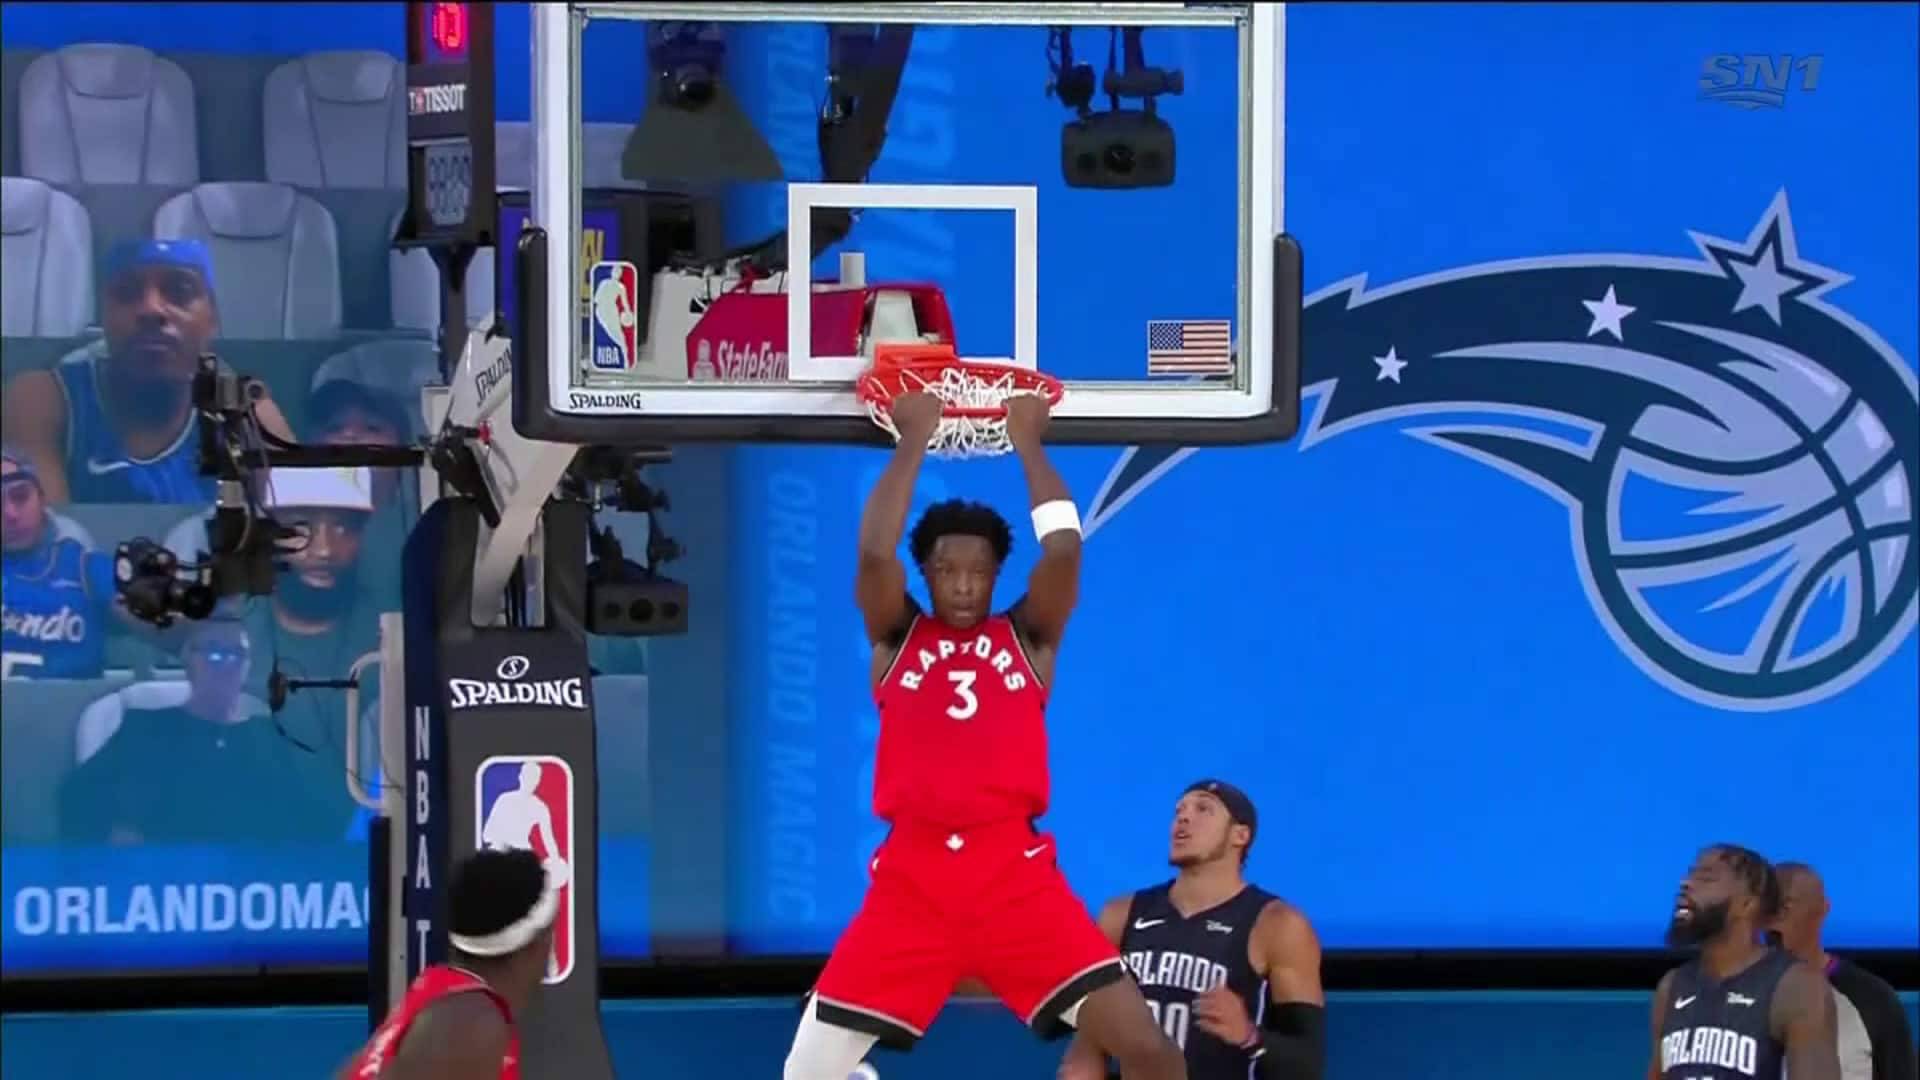 Raptors Highlights: Anunoby Dunk - August 5, 2020